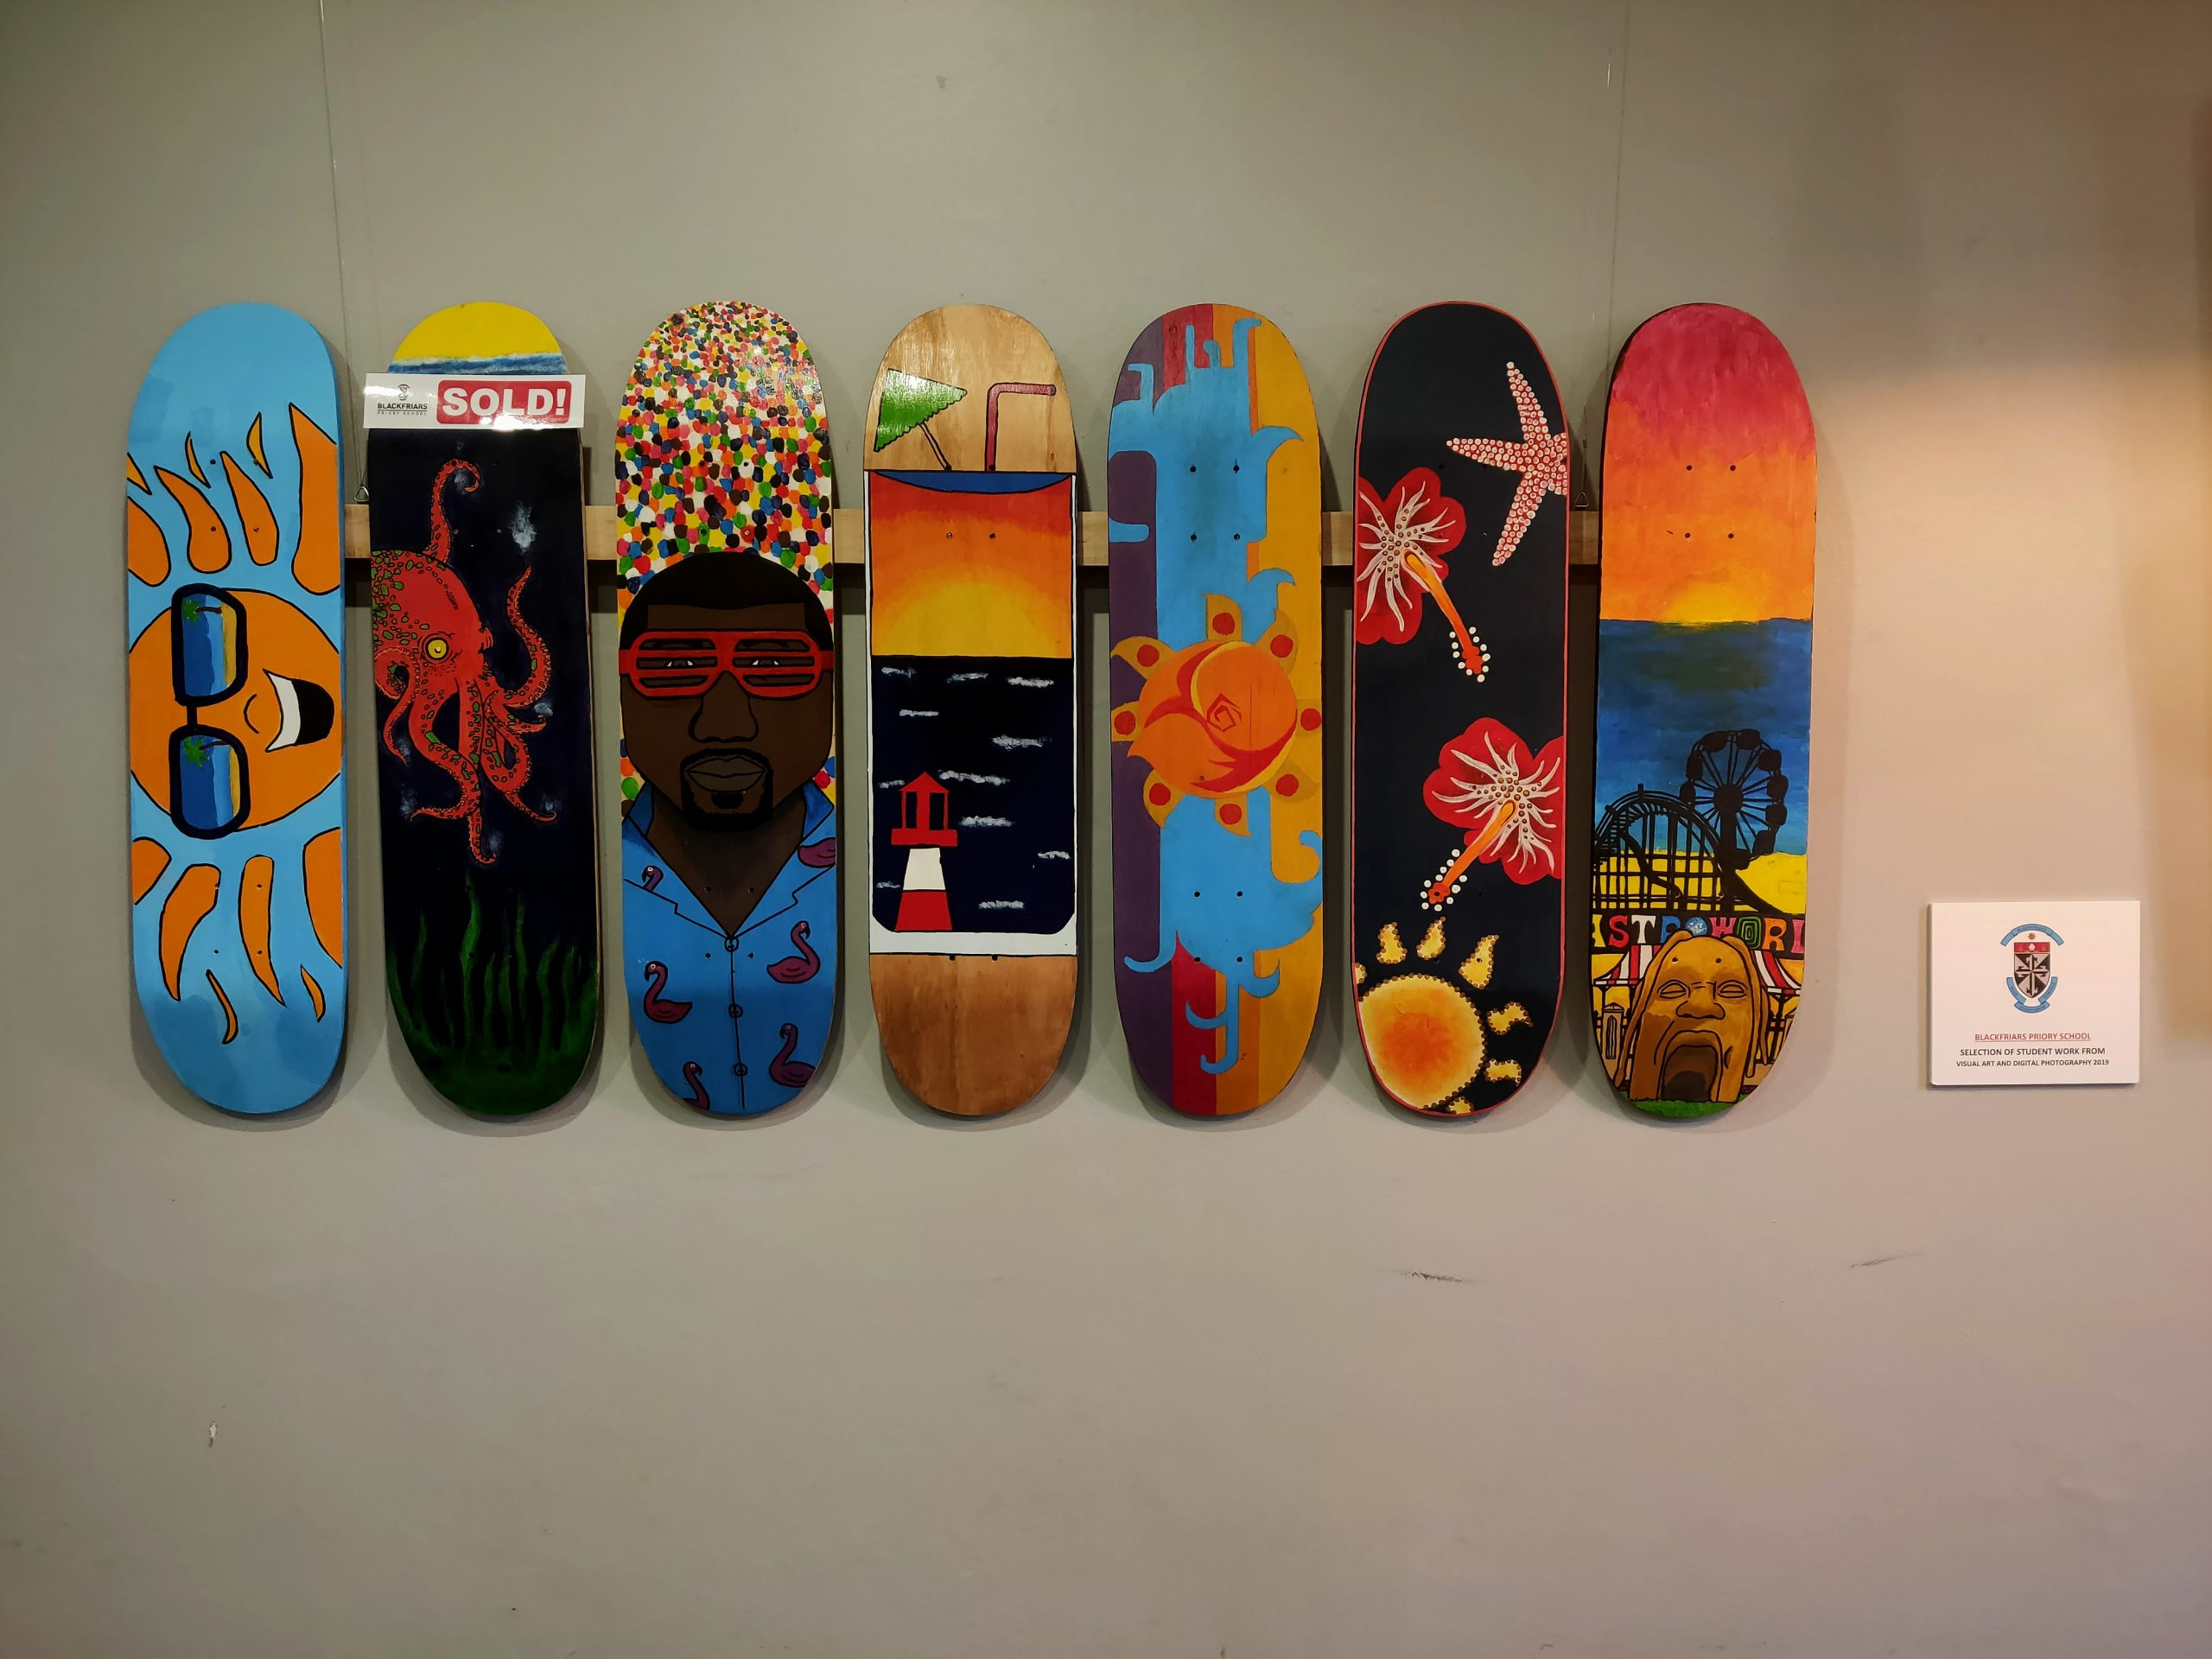 Painted skateboards on display at Cibo Prospect